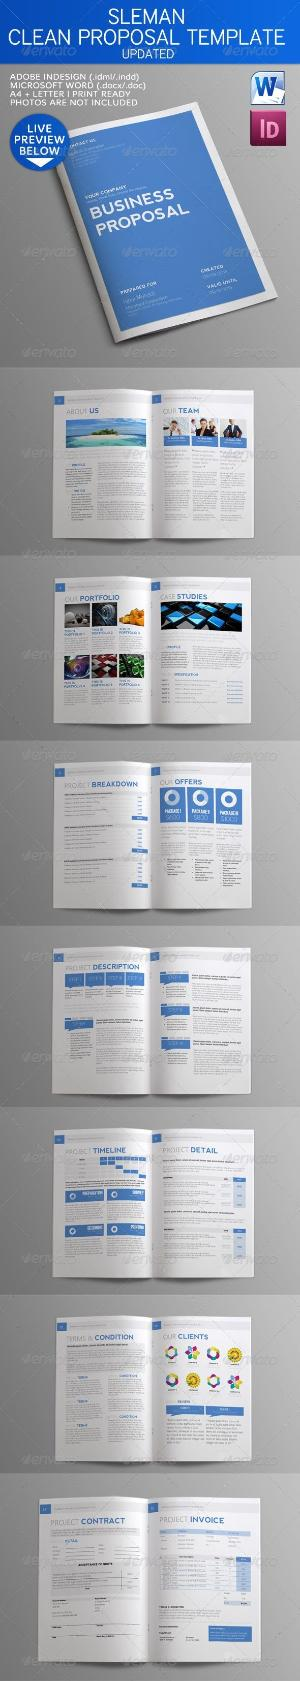 Sleman Clean Proposal Template - GraphicRiver Item for Sale by - sample catering proposal template